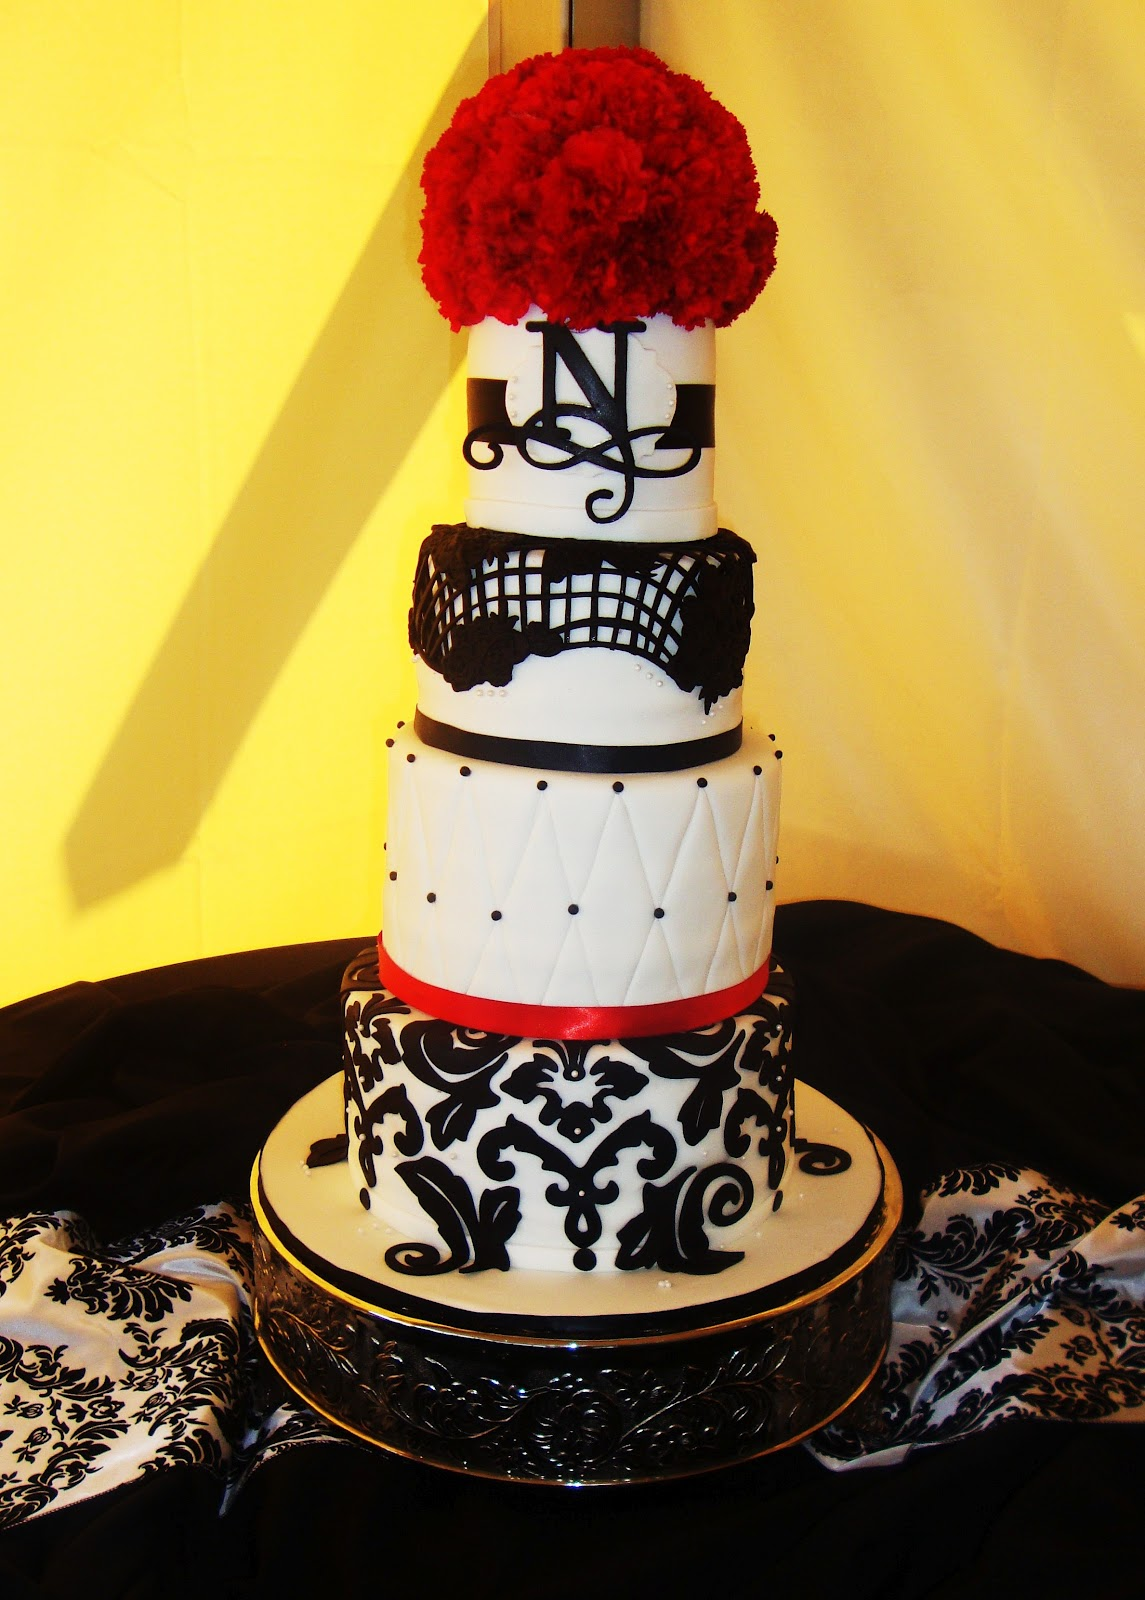 Cake Obsessions: May 2012